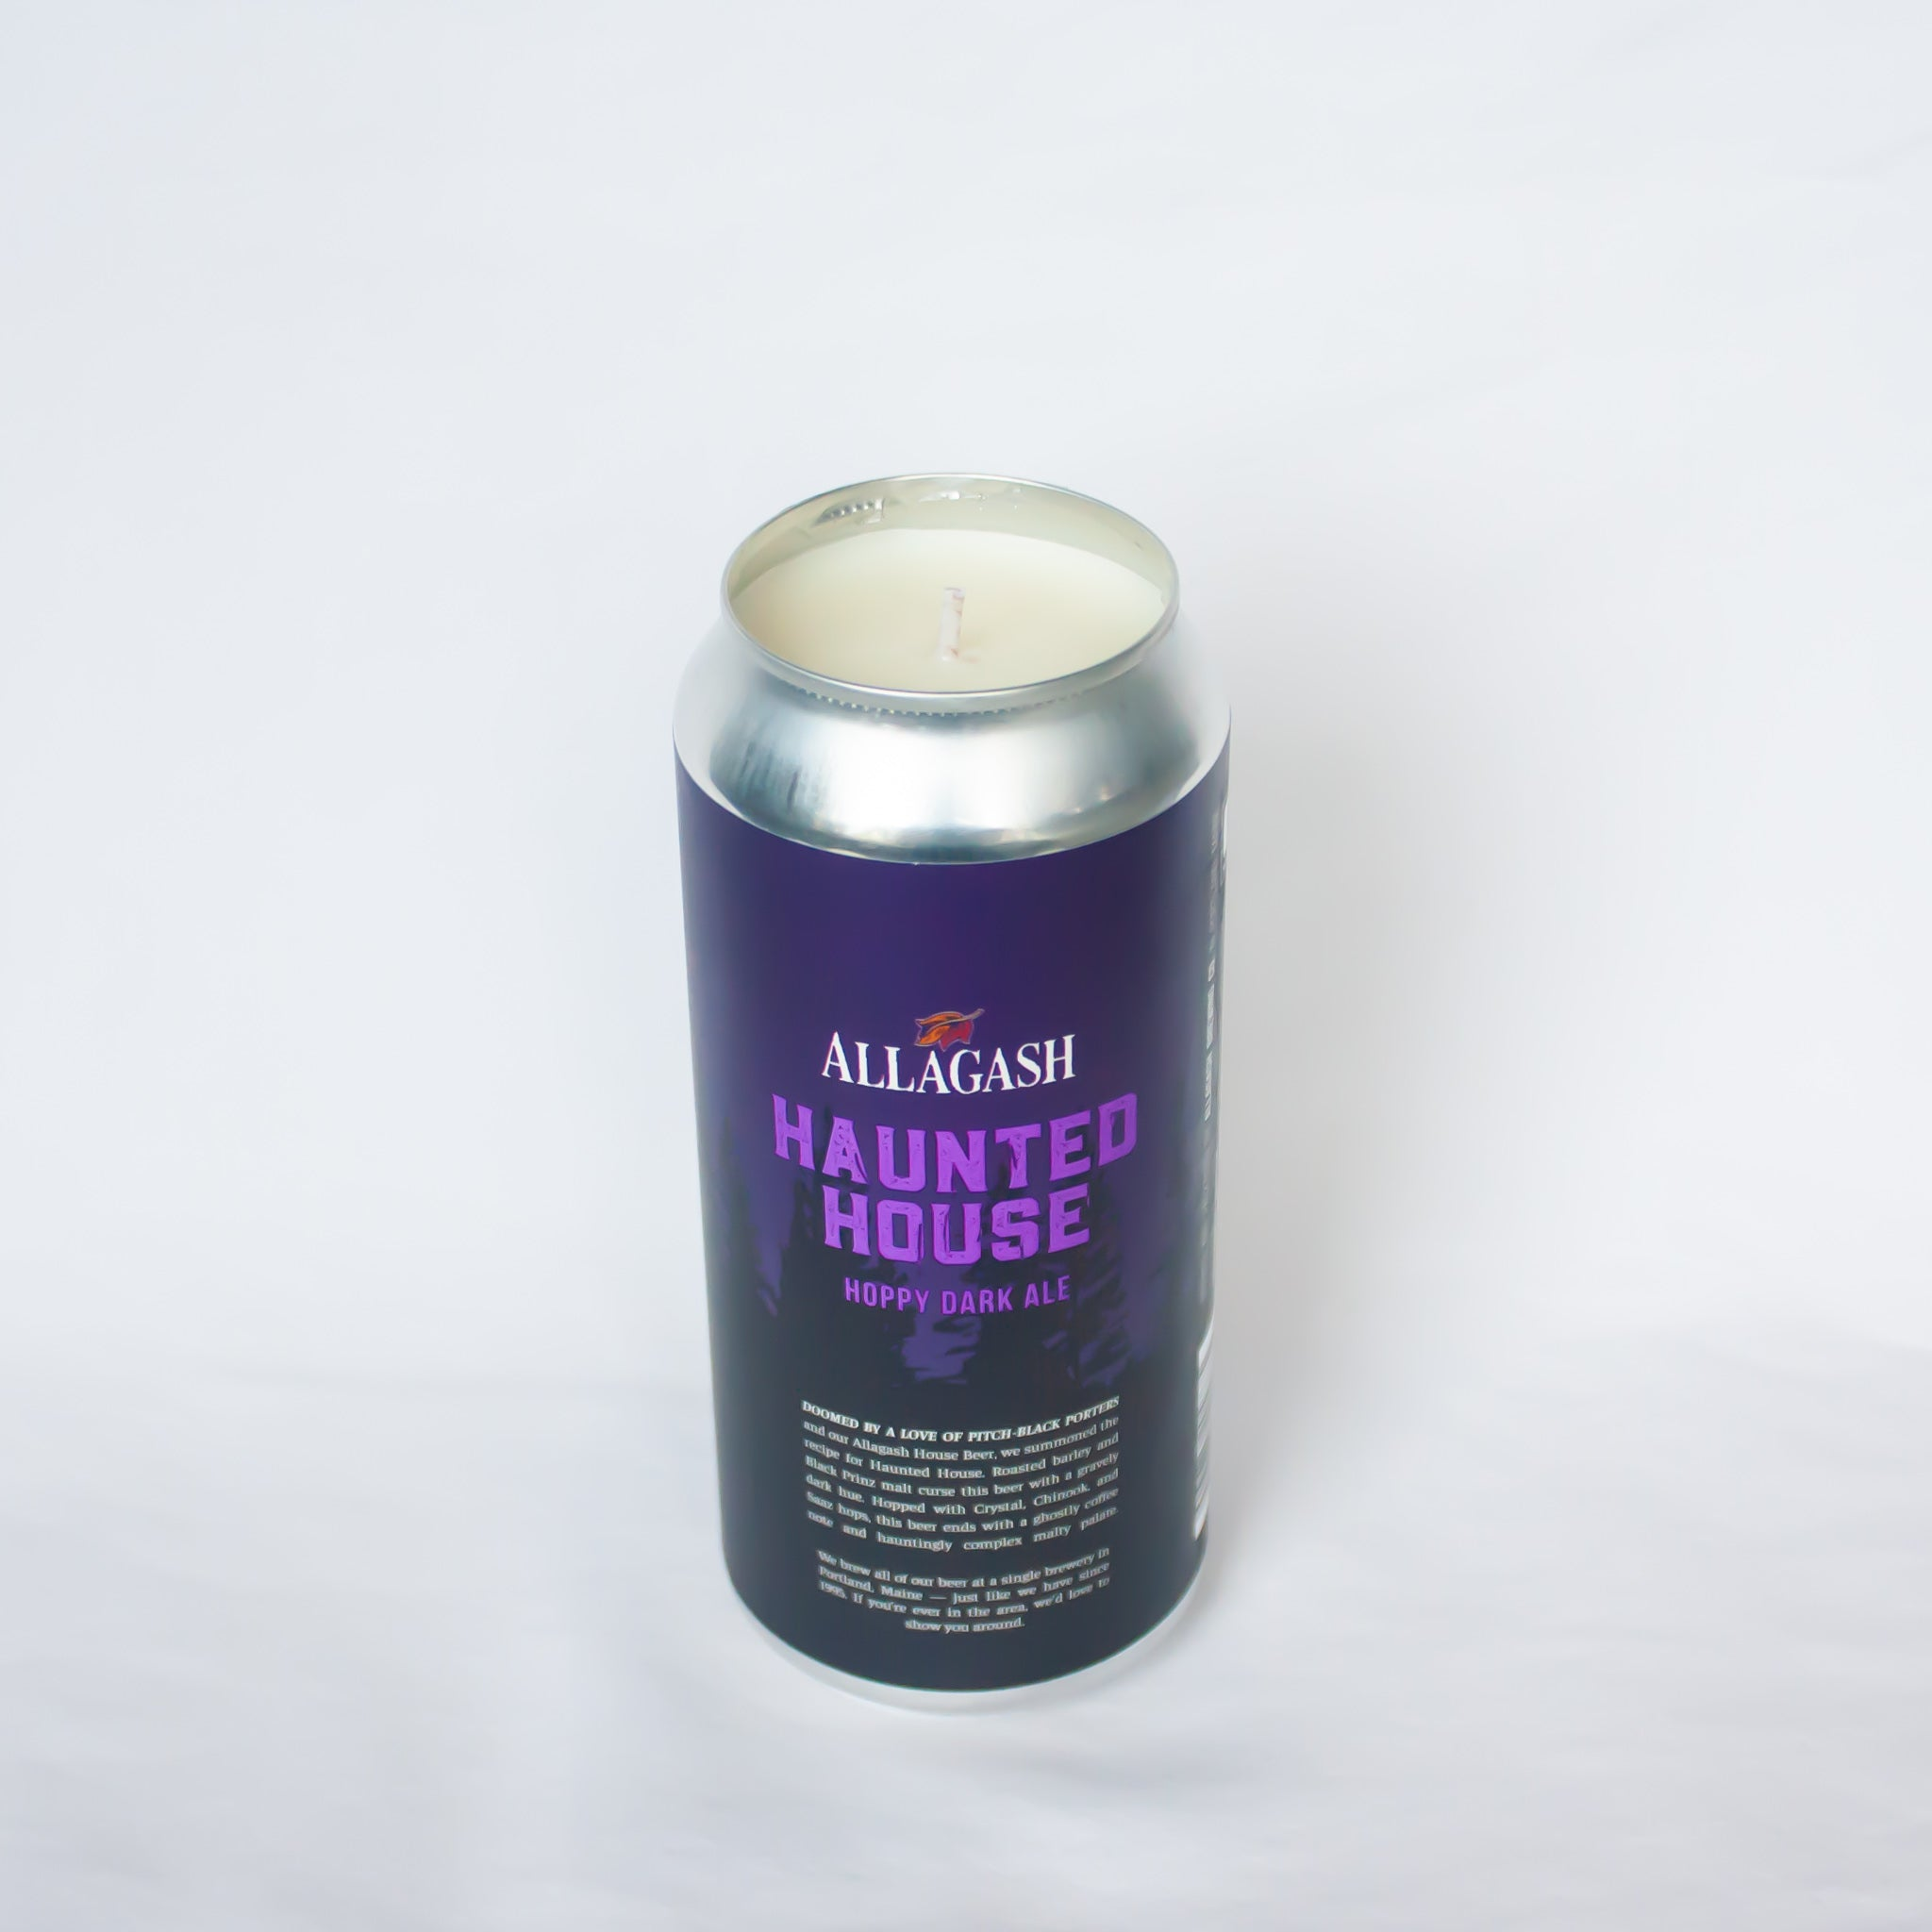 Allagash Haunted House Candle